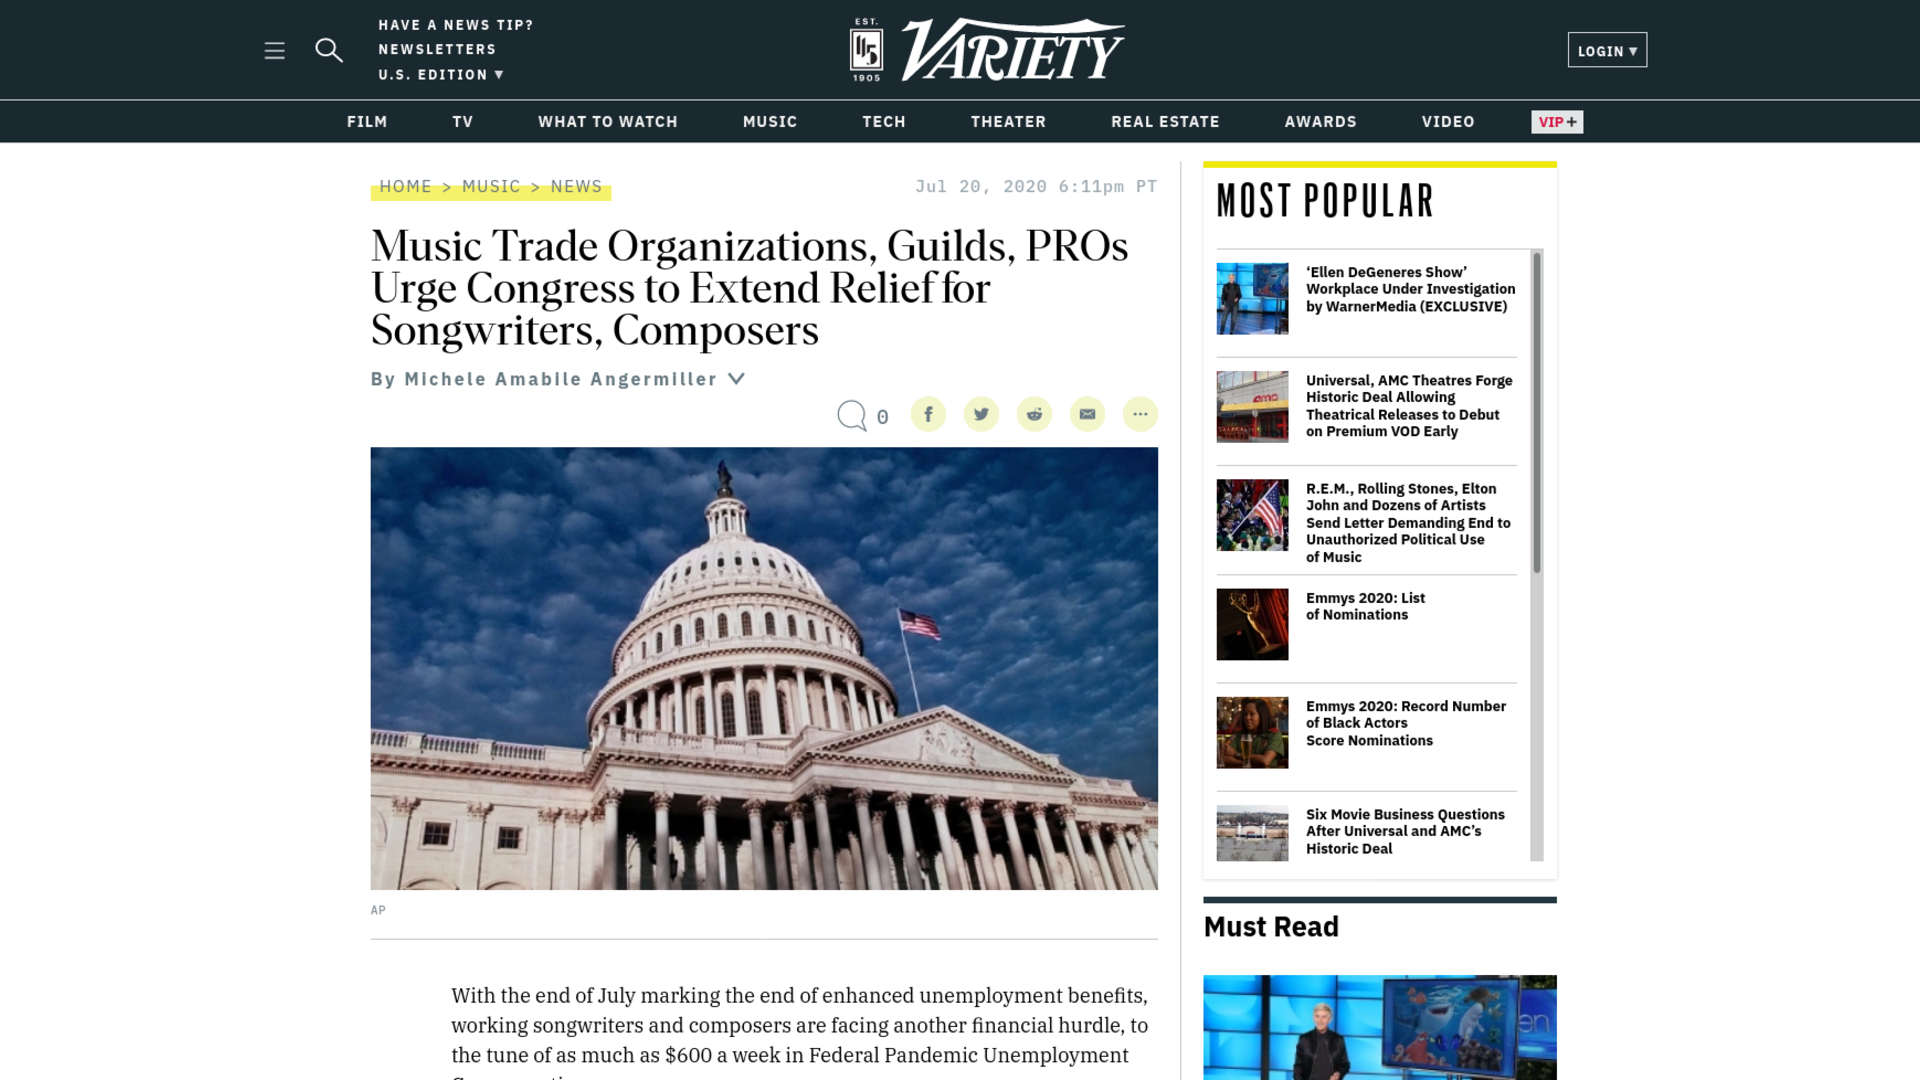 Fairness Rocks News Music Trade Organizations, Guilds, PROs Urge Congress to Extend Relief for Songwriters, Composers